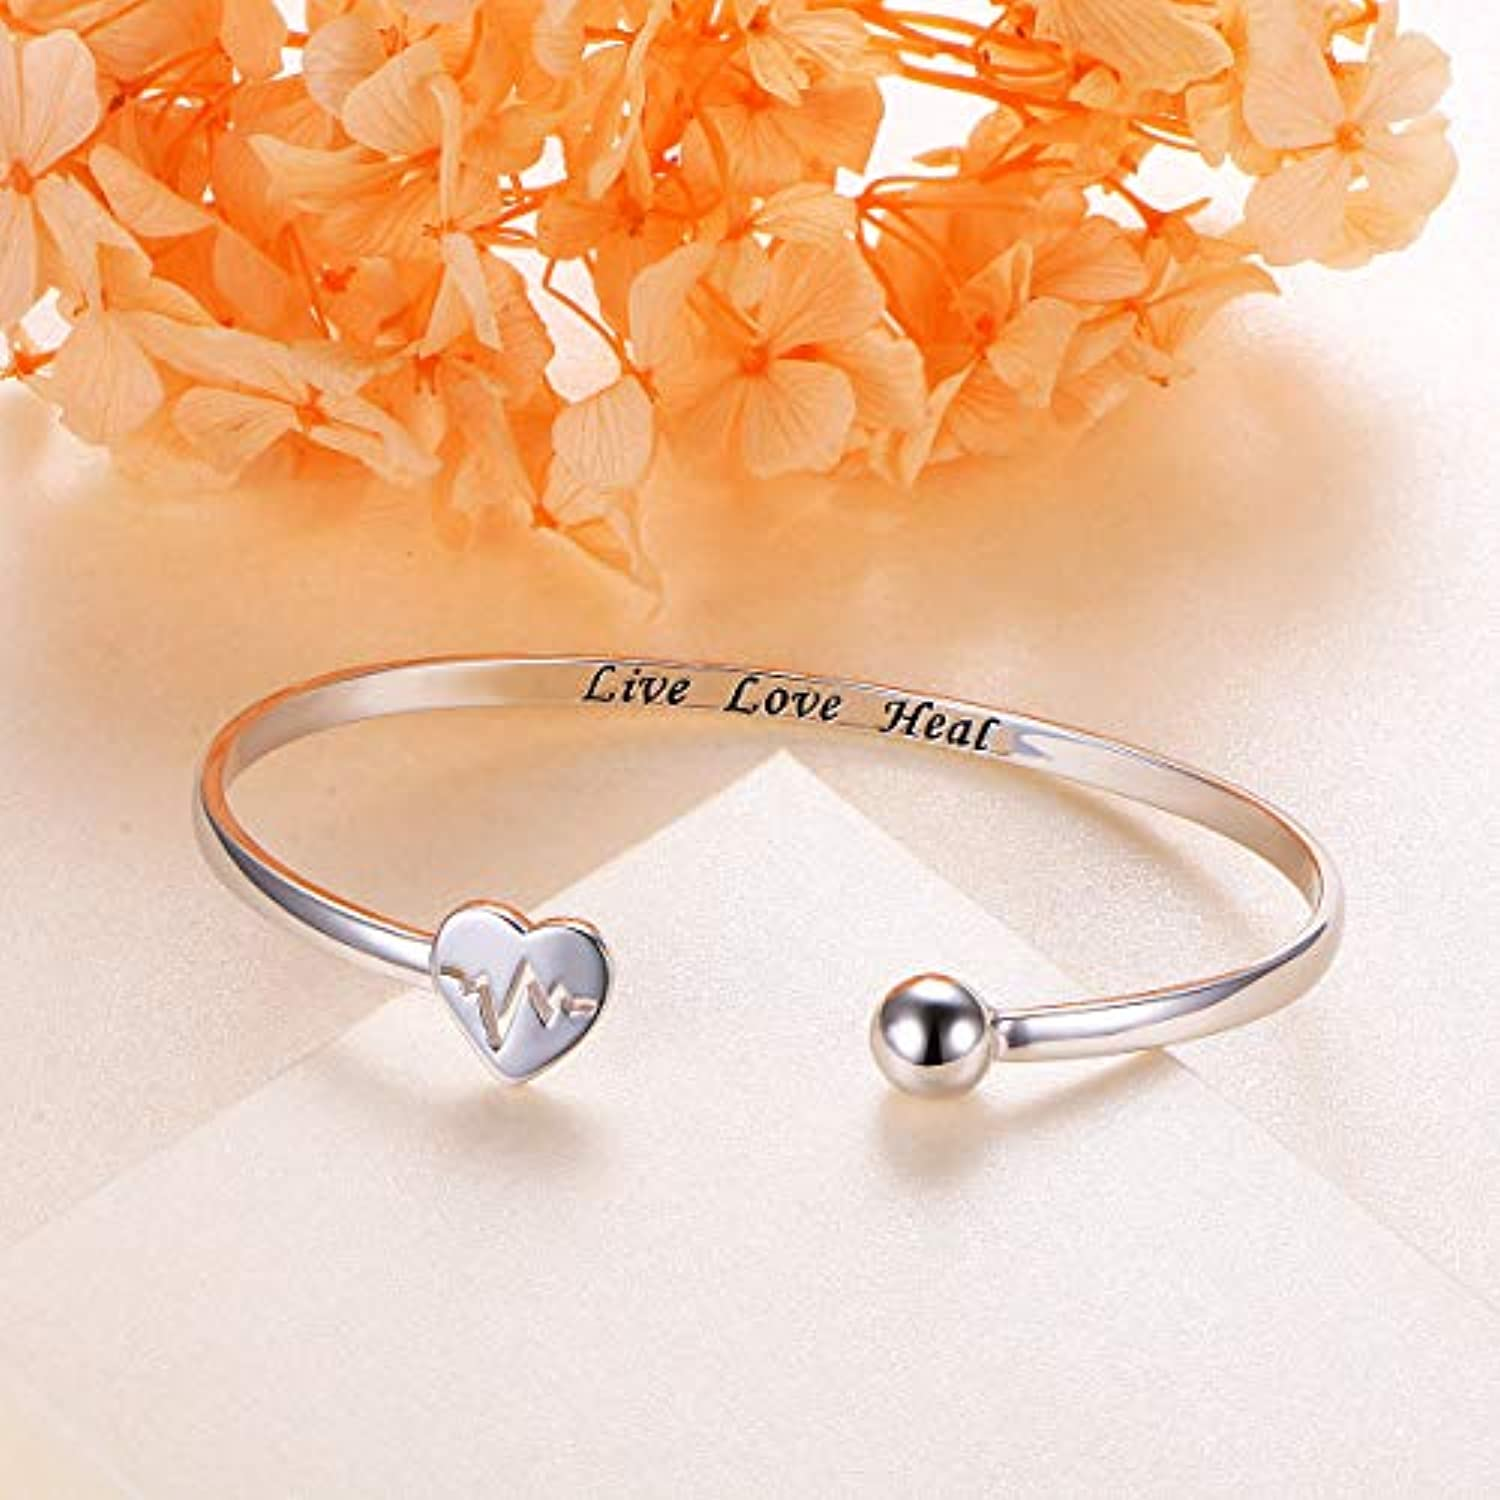 925 Sterling Silver Adjustable Open Cuff Heart Bangle Bracelet for Women Girls Inspirational Gift